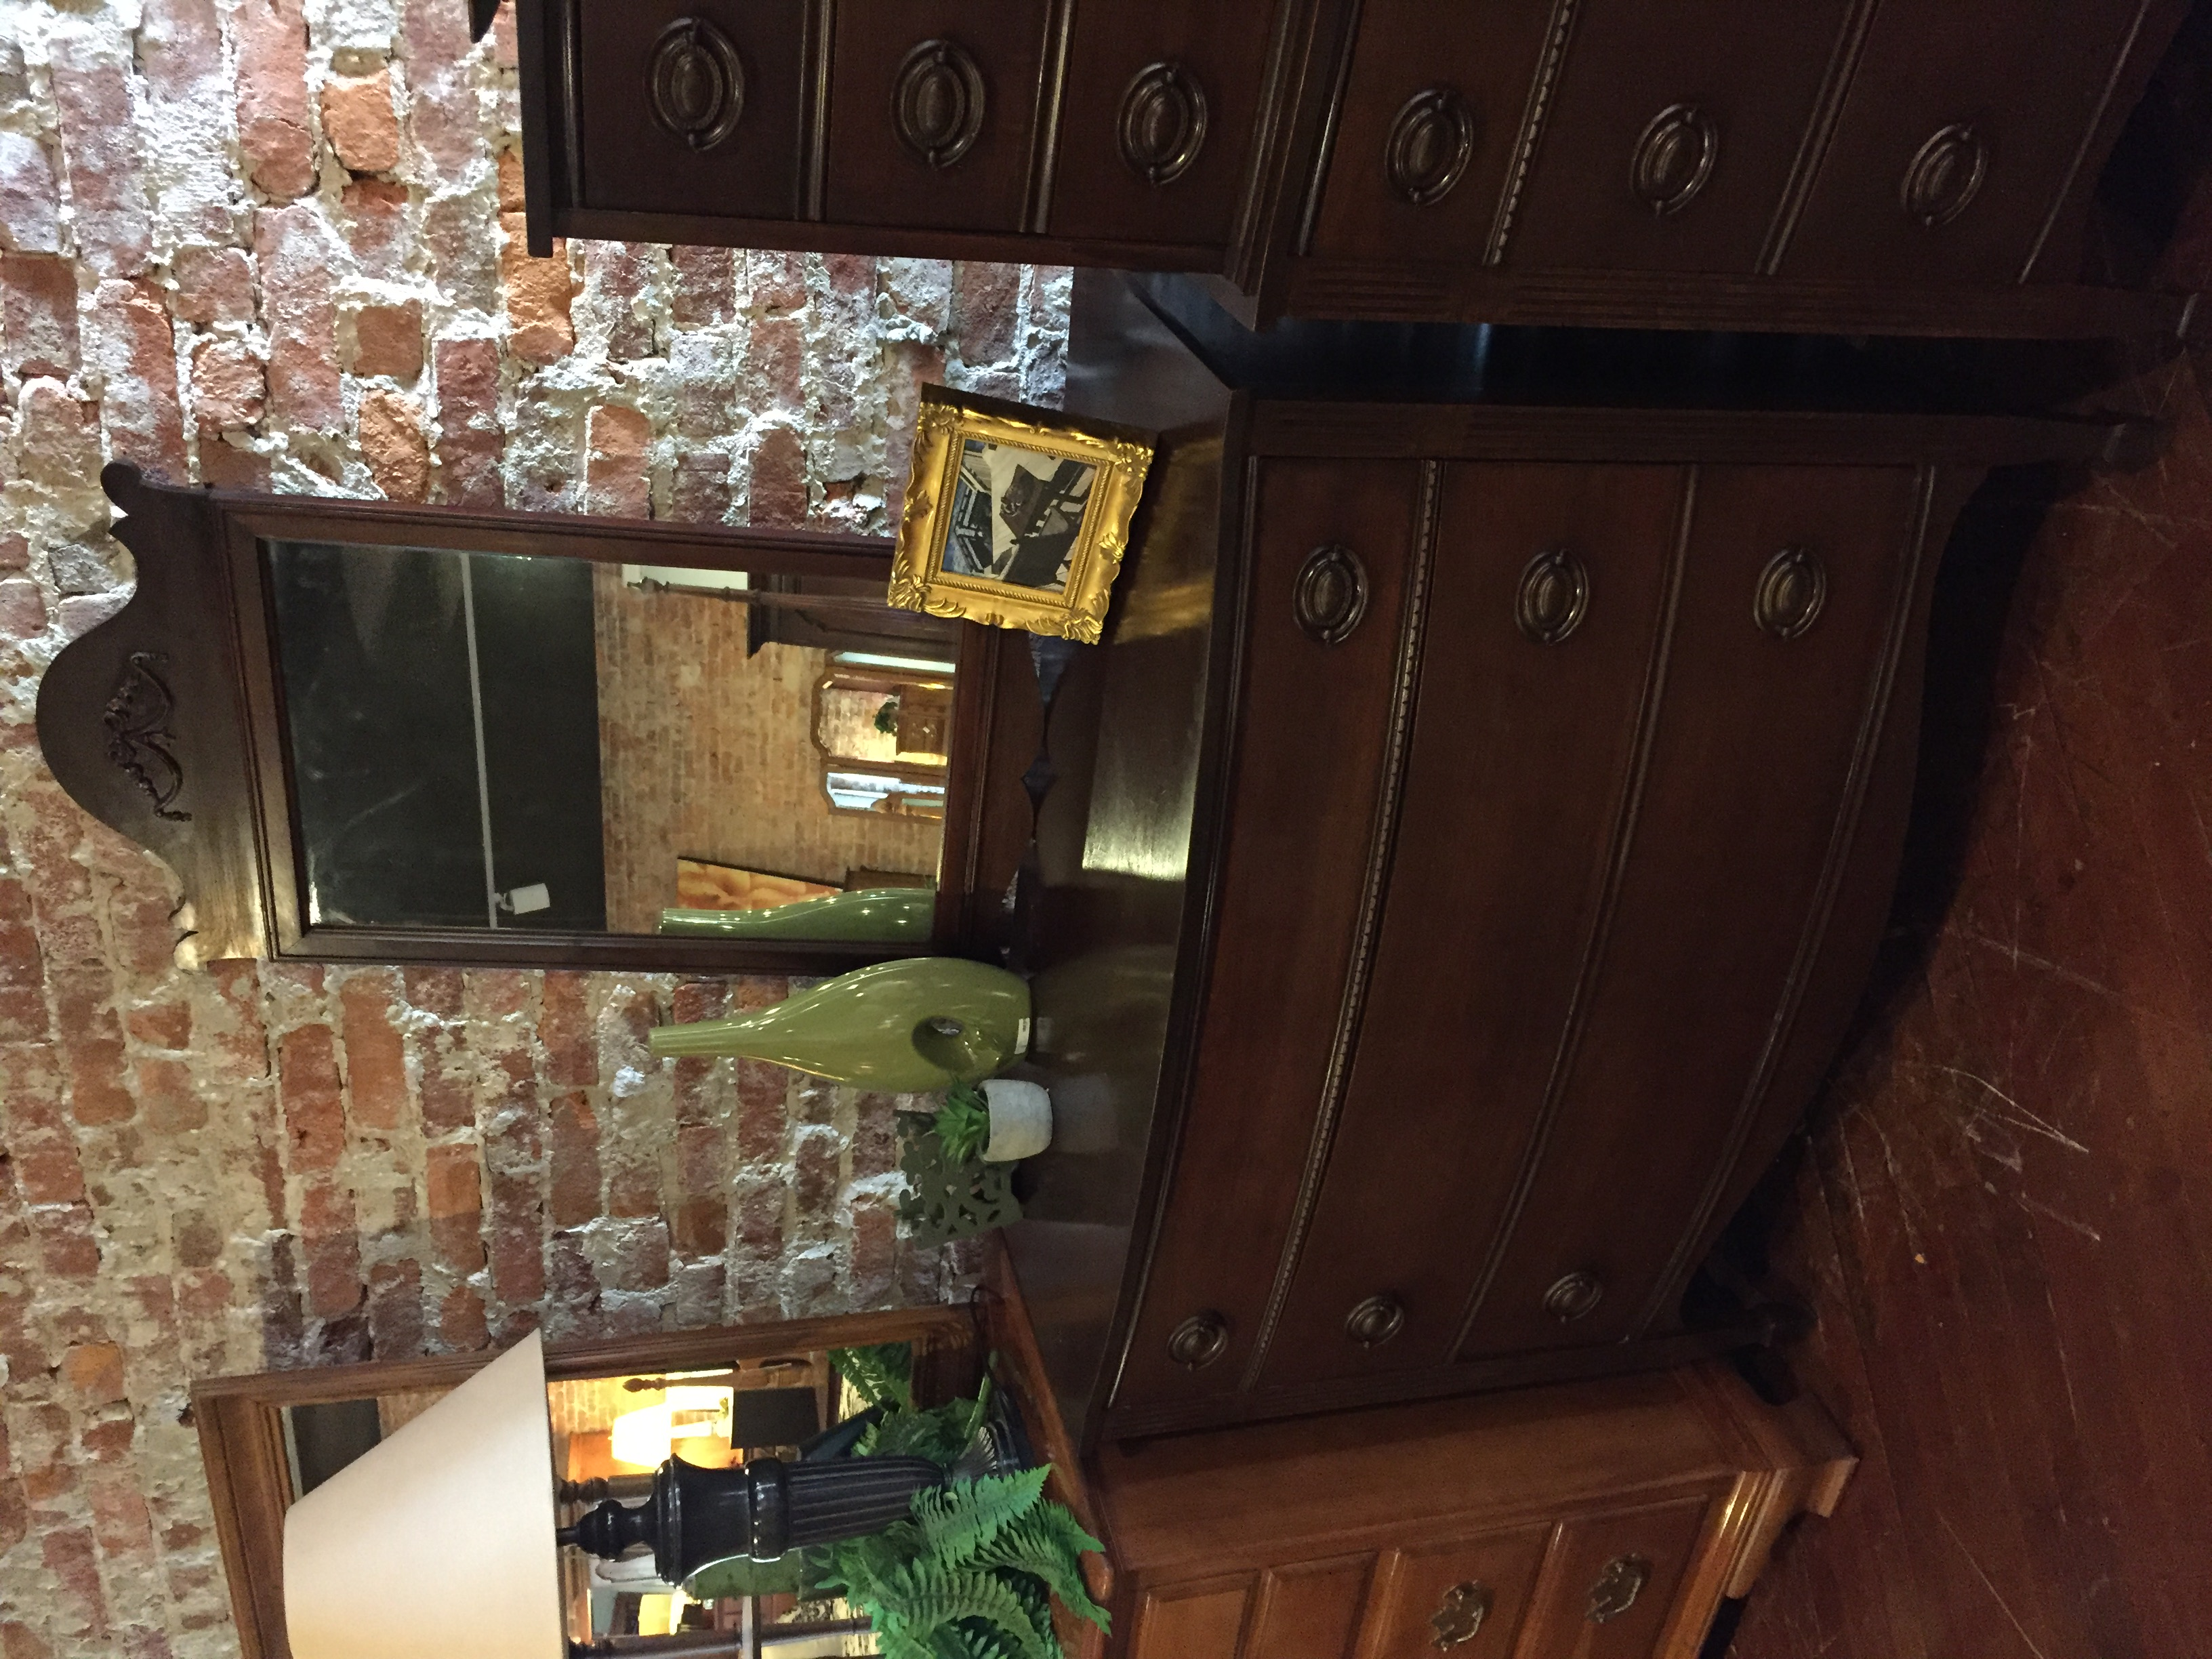 MAHOGANY FINISH DRESSER WITH MIRROR